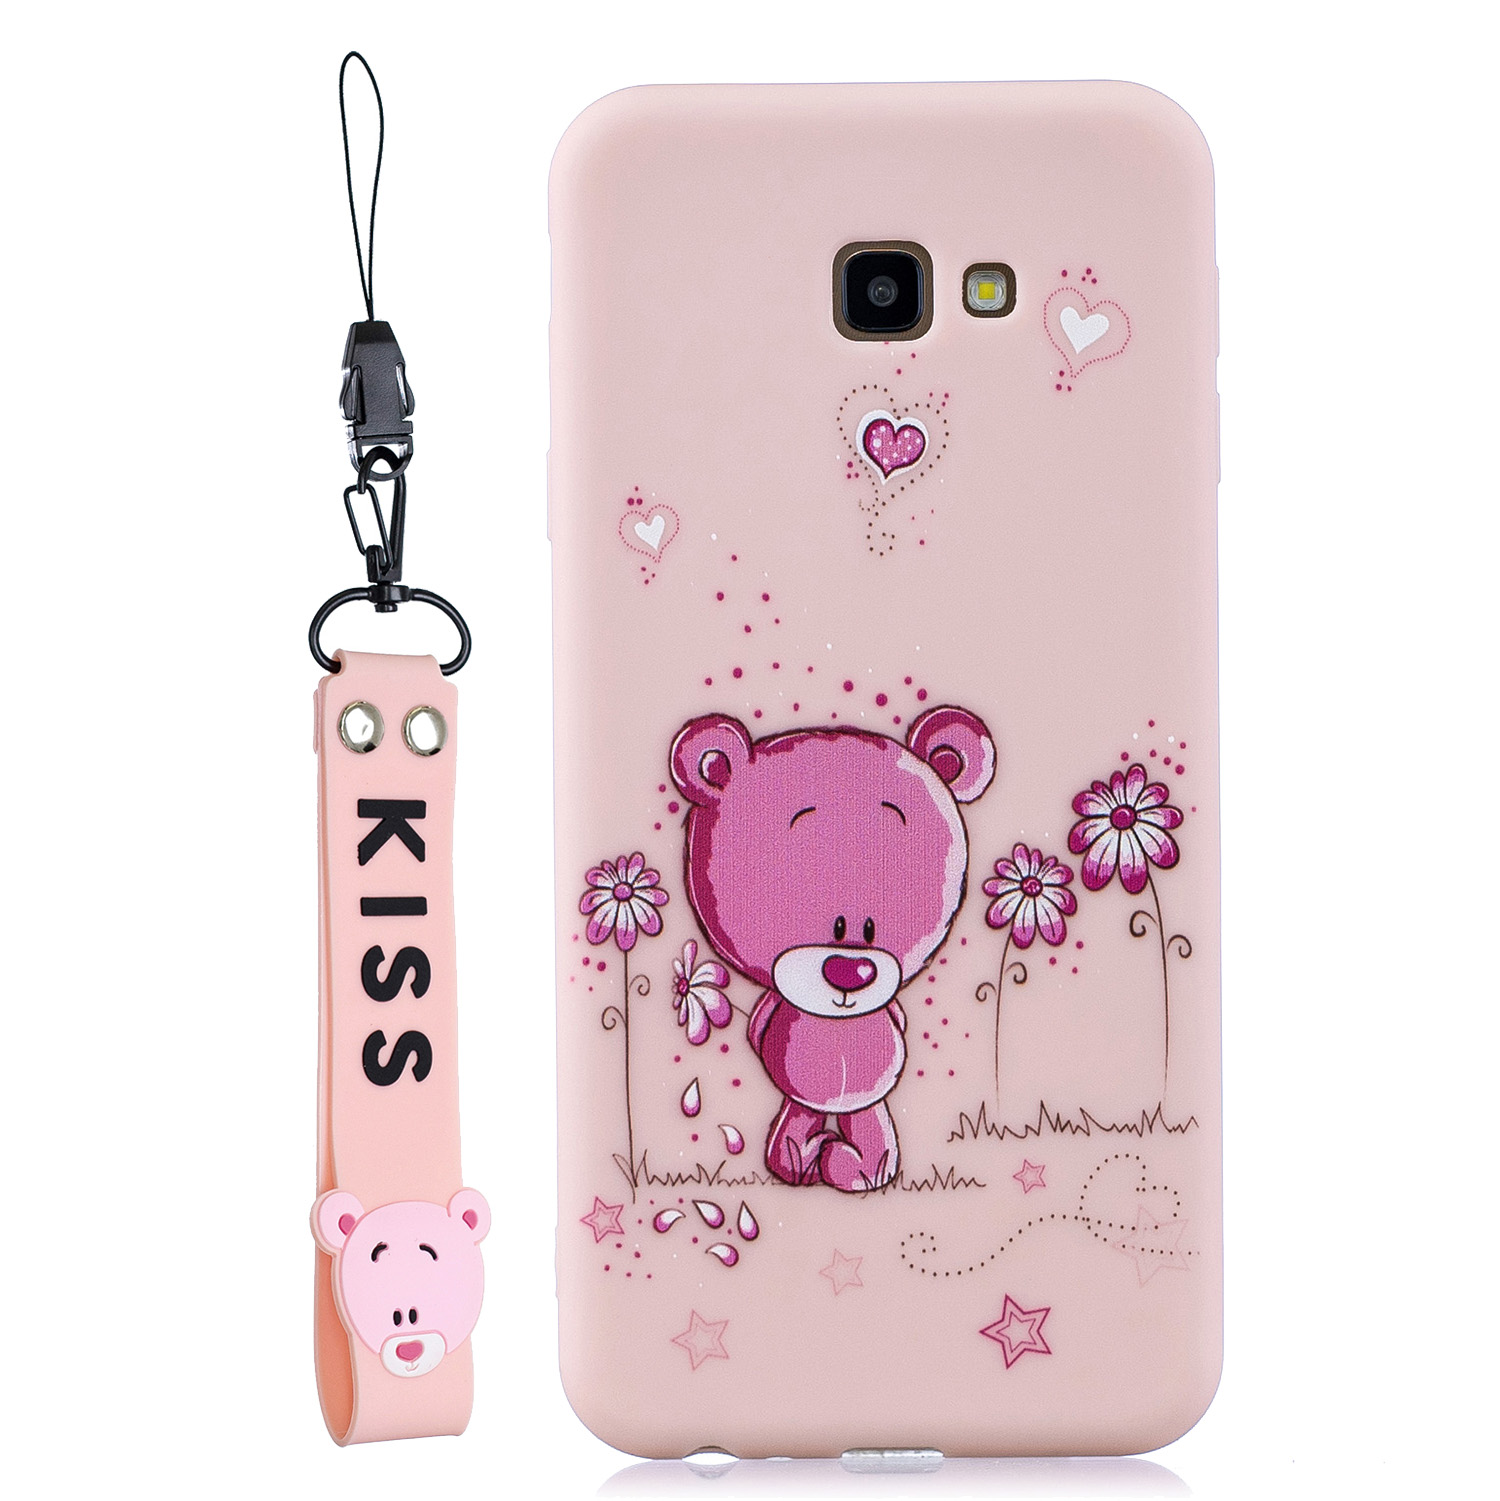 For Samsung A5 2017 Cartoon Lovely Coloured Painted Soft TPU Back Cover Non-slip Shockproof Full Protective Case with Lanyard Light pink